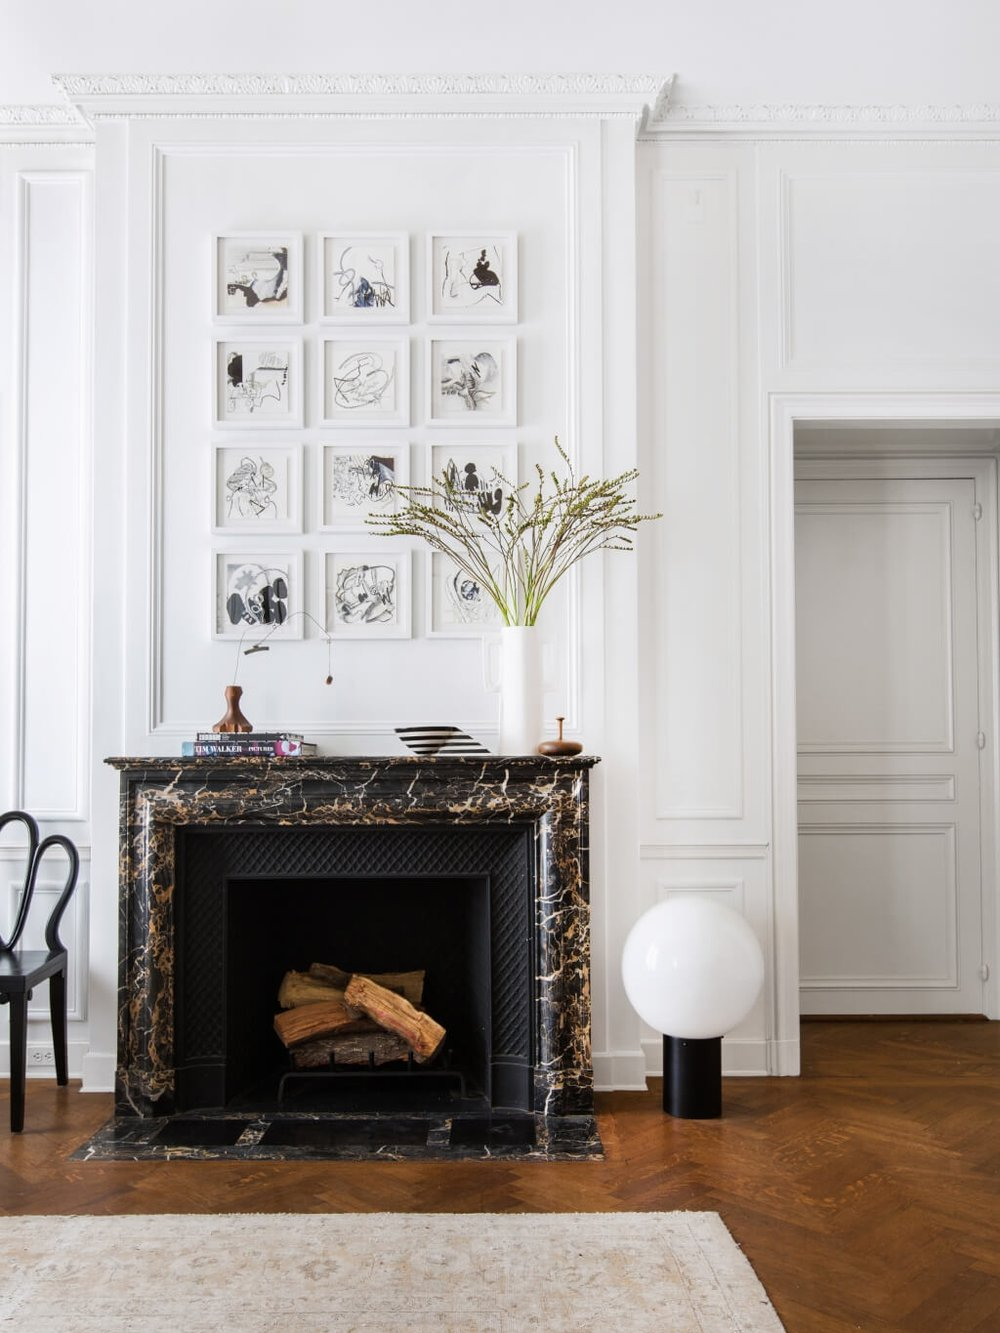 Emily-Henderson_The-Fourth-Artist_Sothebys_Parisian-Apartment_Pics_3-1024x1411.jpg